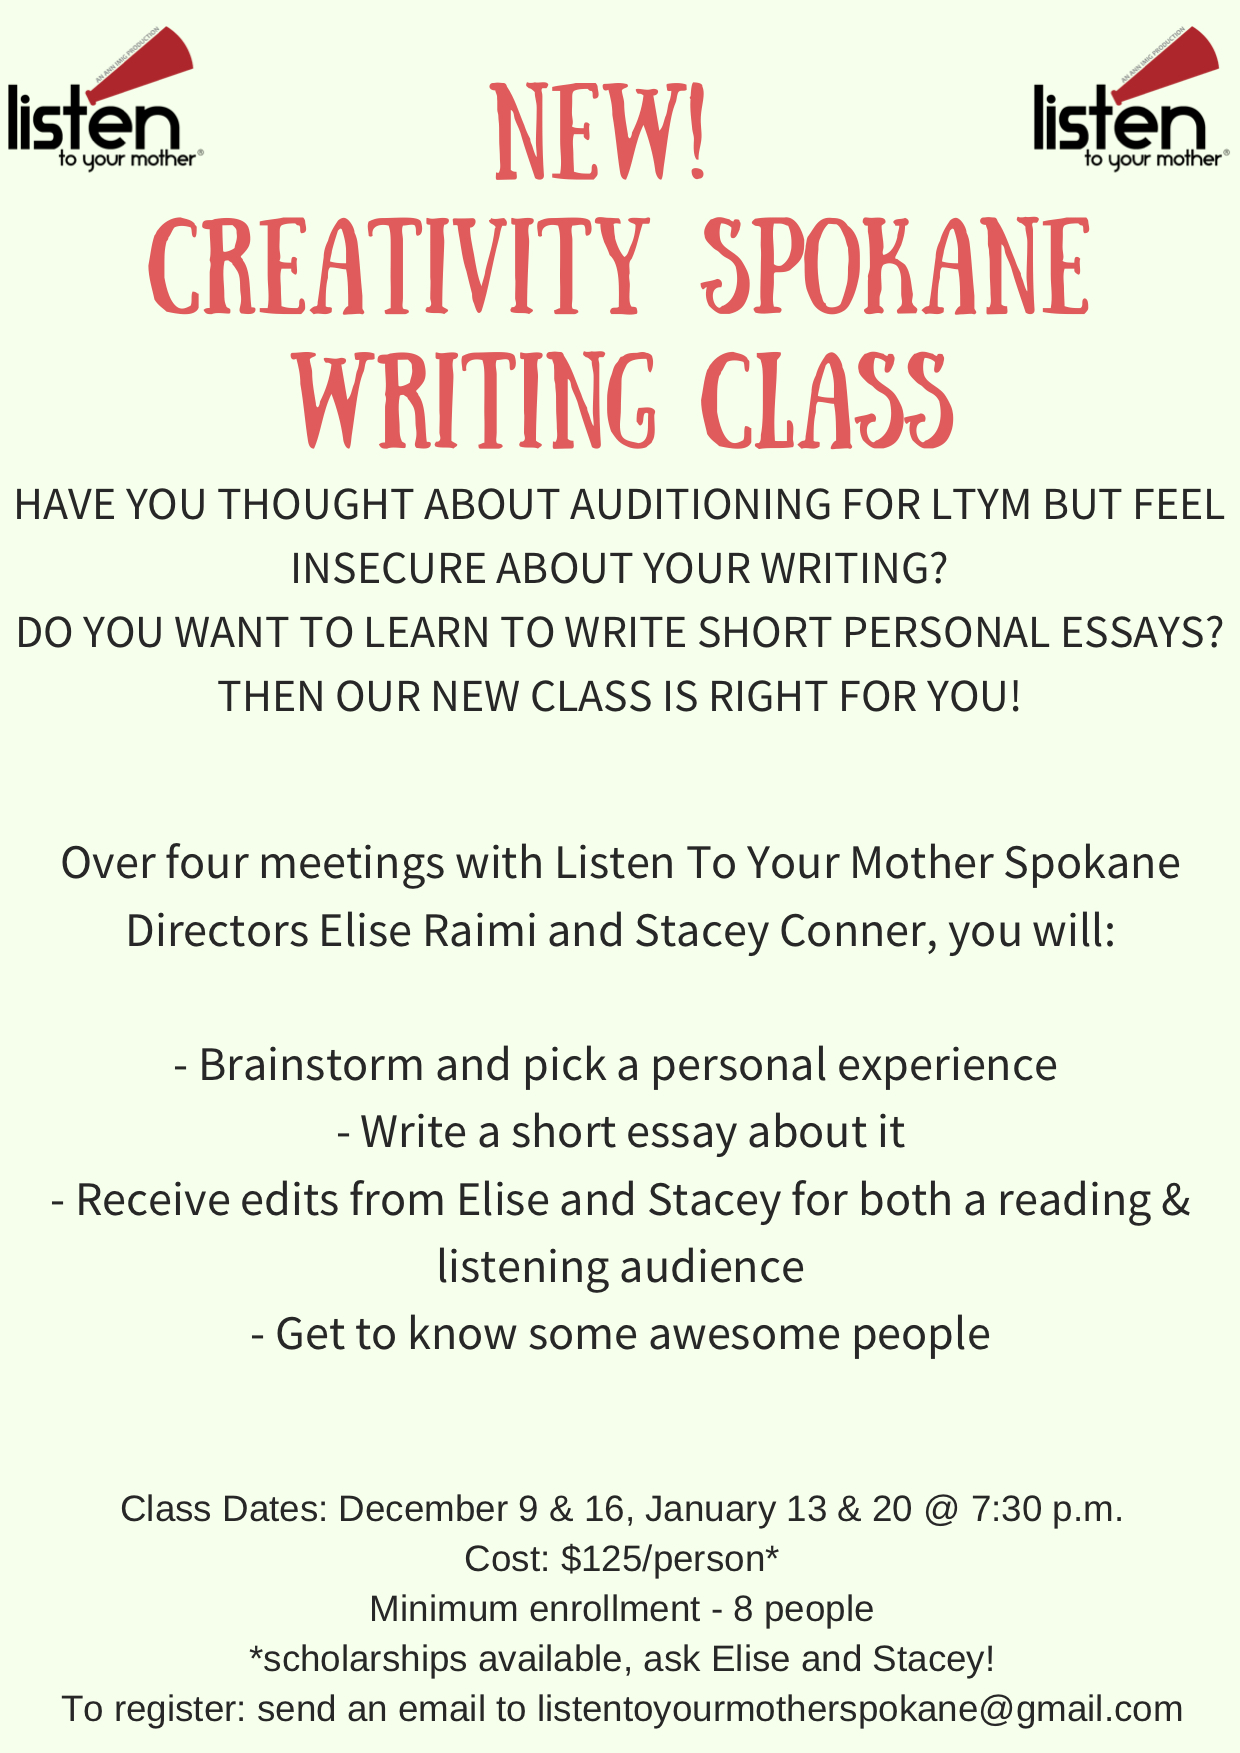 New! Creativity Spokane Writing Class (1).jpg